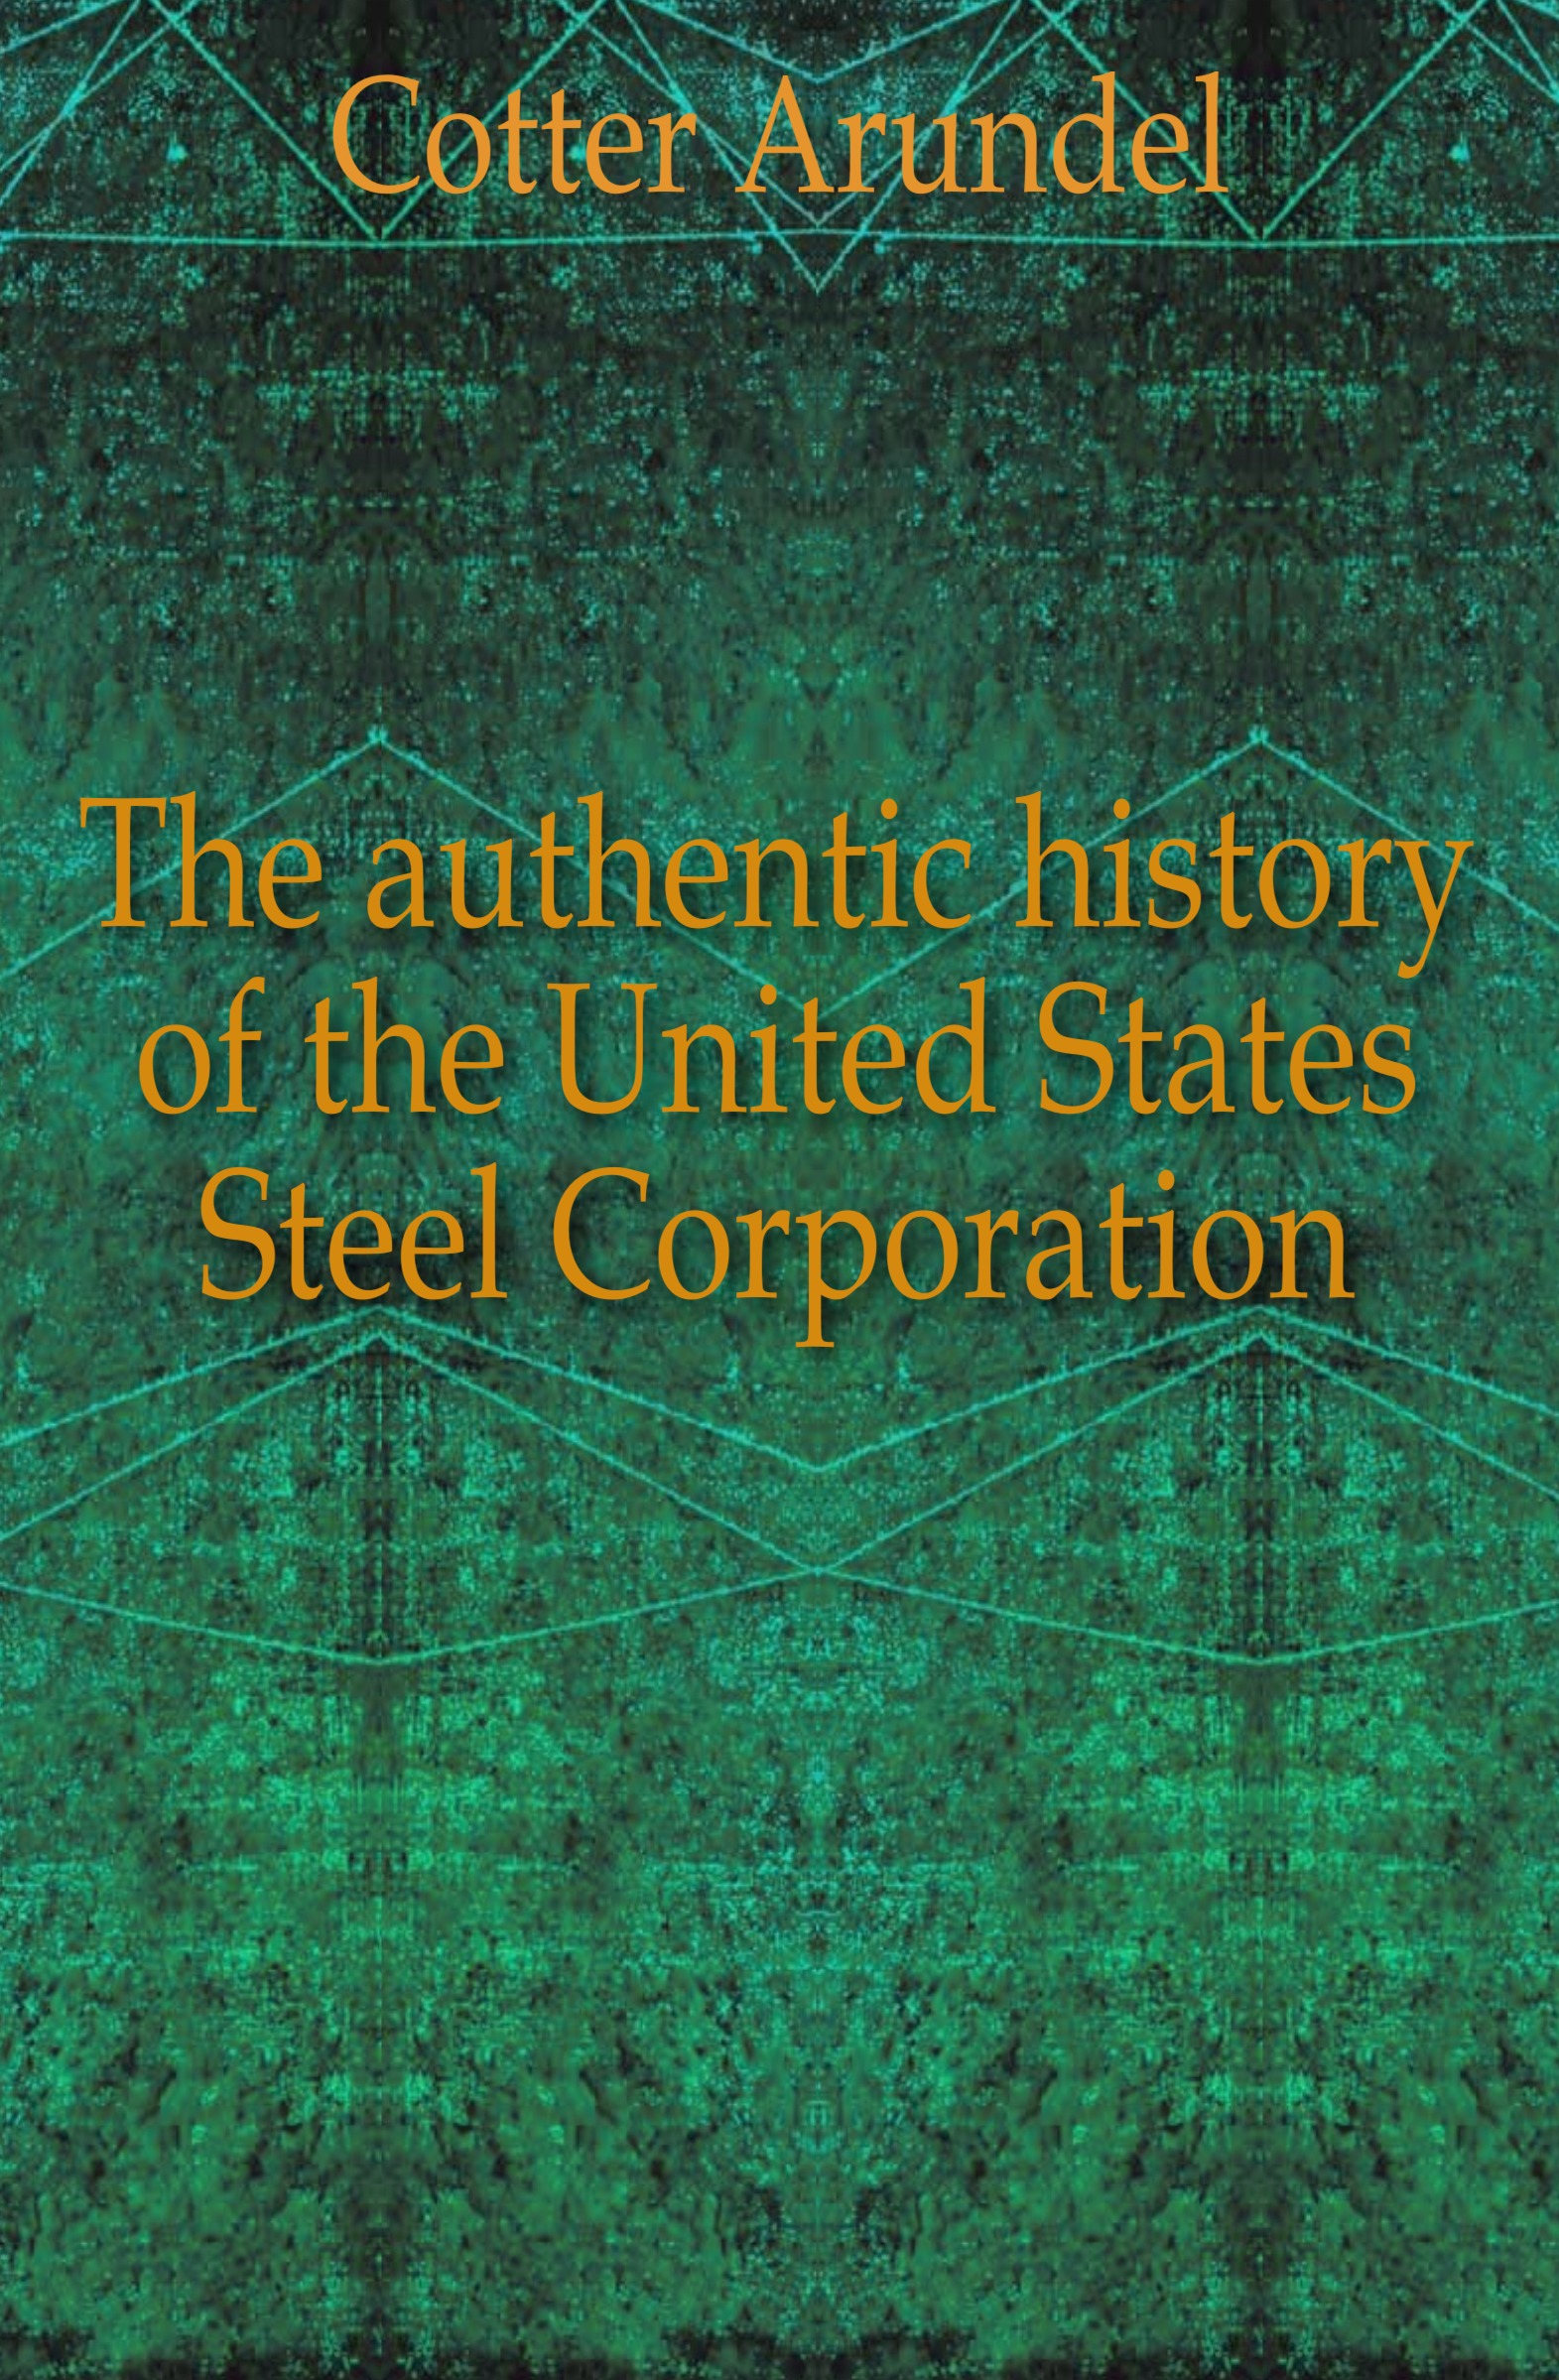 Cotter Arundel The authentic history of the United States Steel Corporation [zob] the united states bussmann 170m3815 200a 690v fuse original authentic